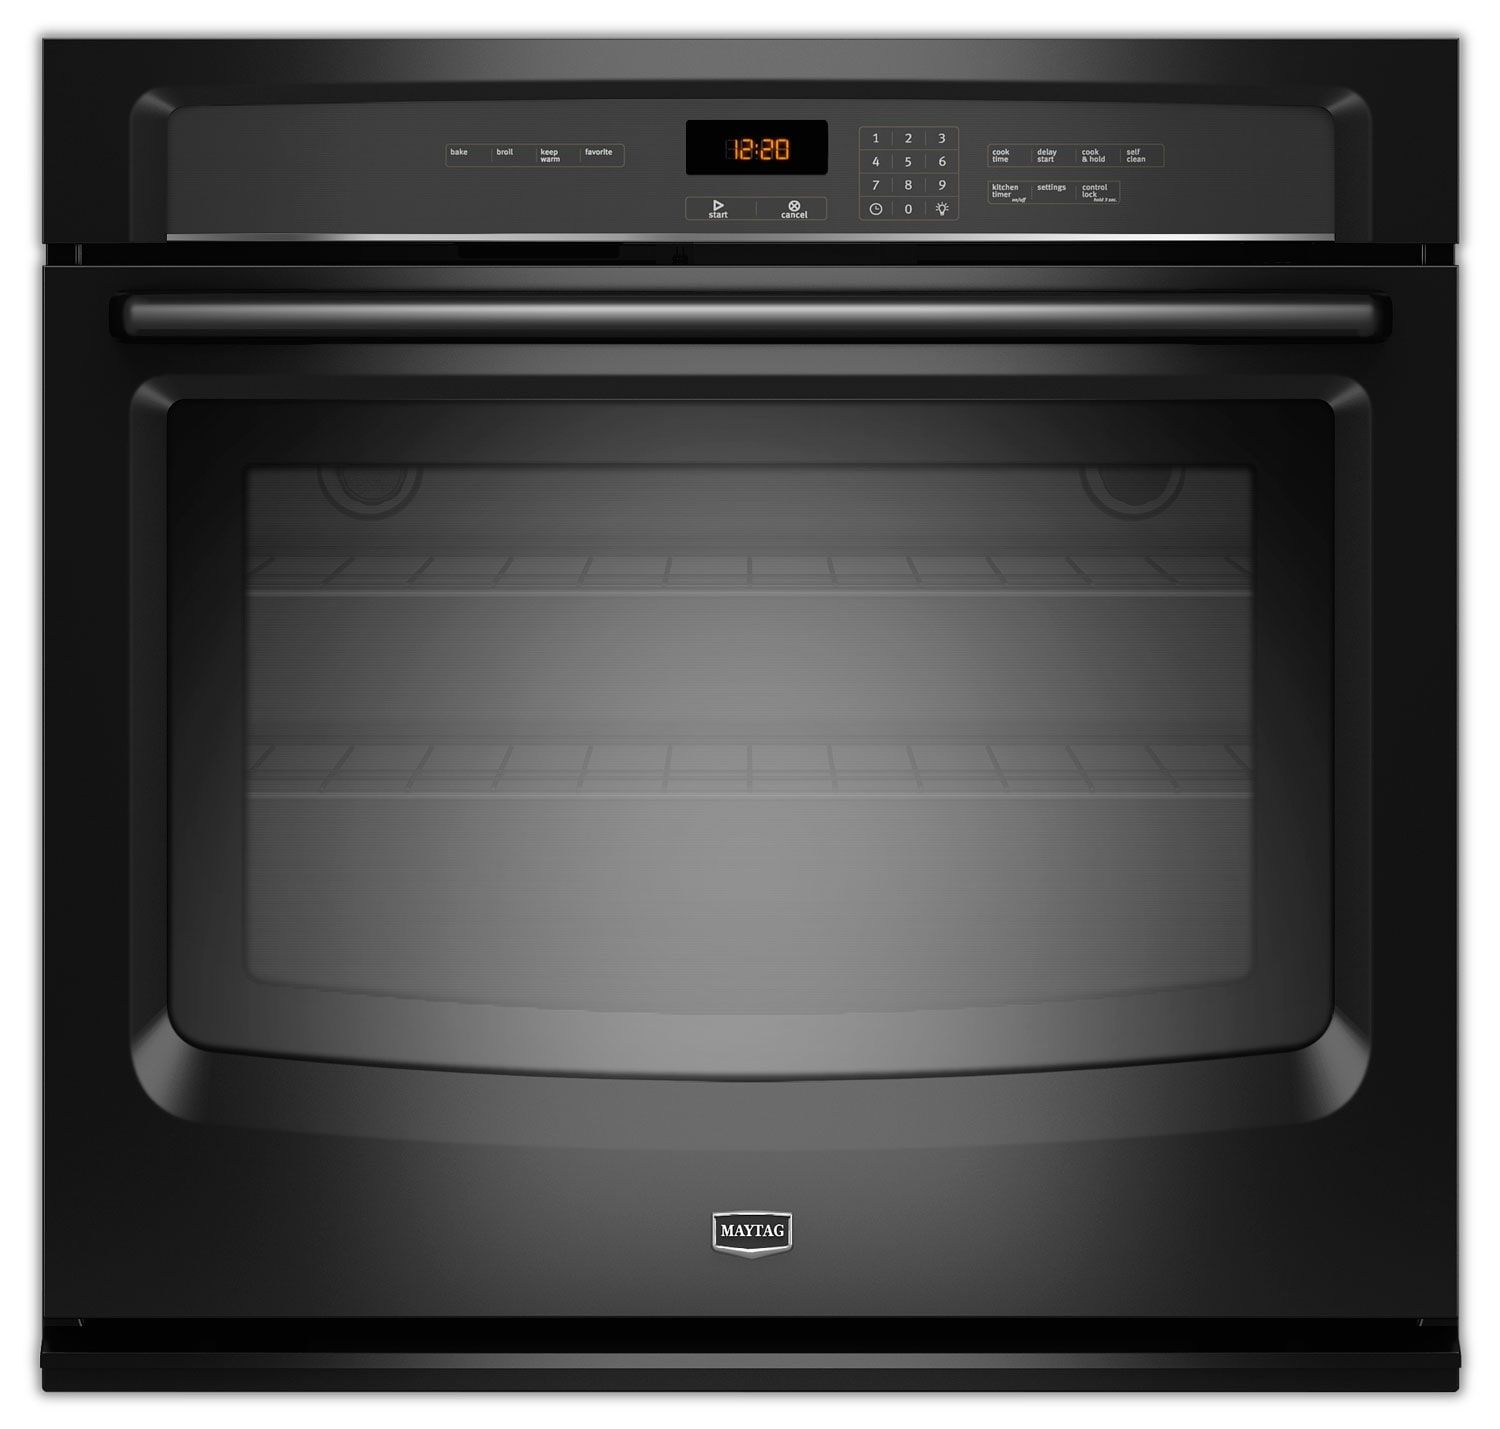 Cooking Products - Maytag Black Wall Oven (5.0 Cu. Ft.) - MEW7530DB